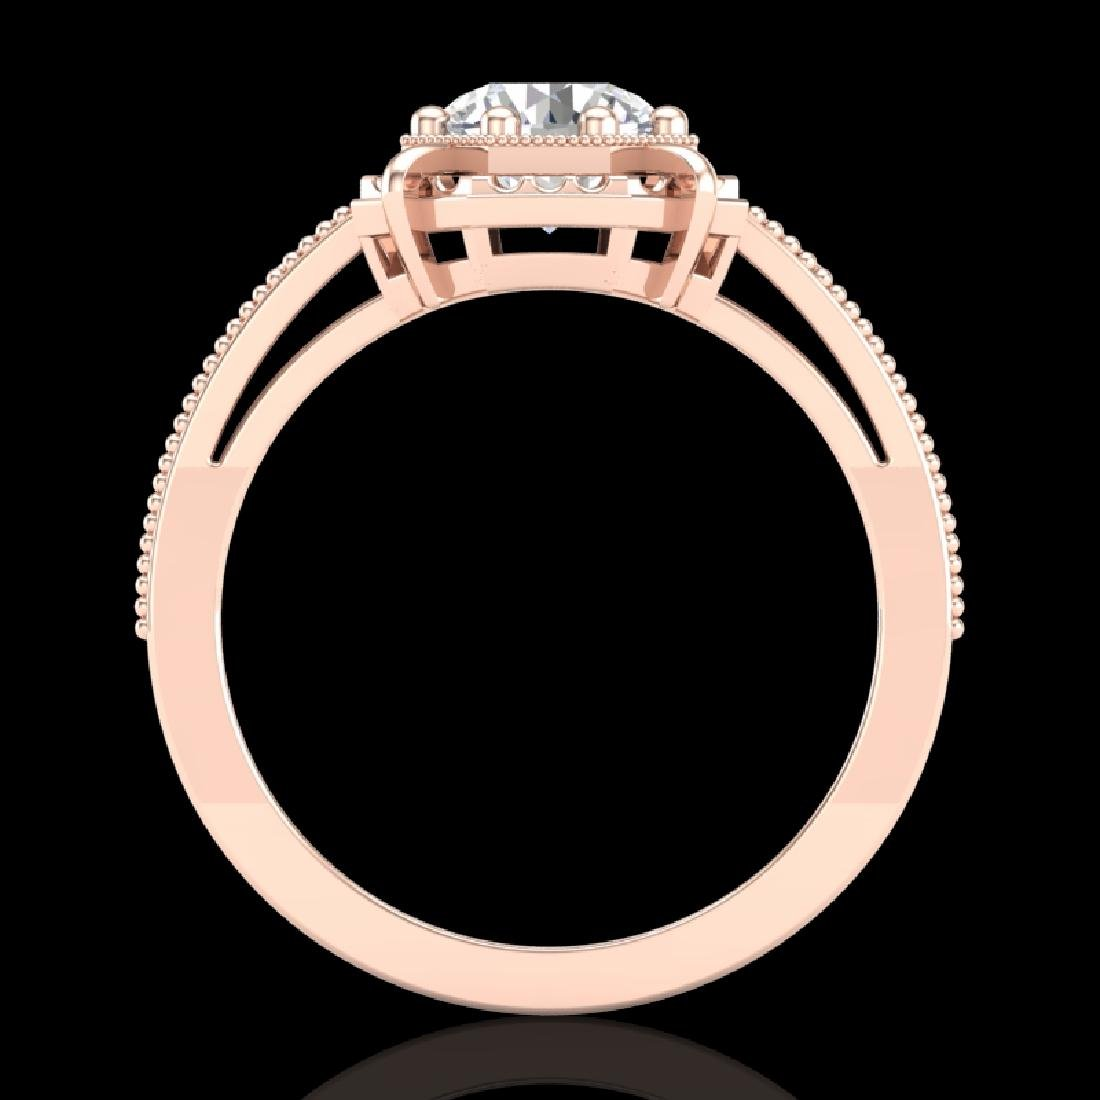 1 CTW VS/SI Diamond Solitaire Art Deco Ring 18K Rose